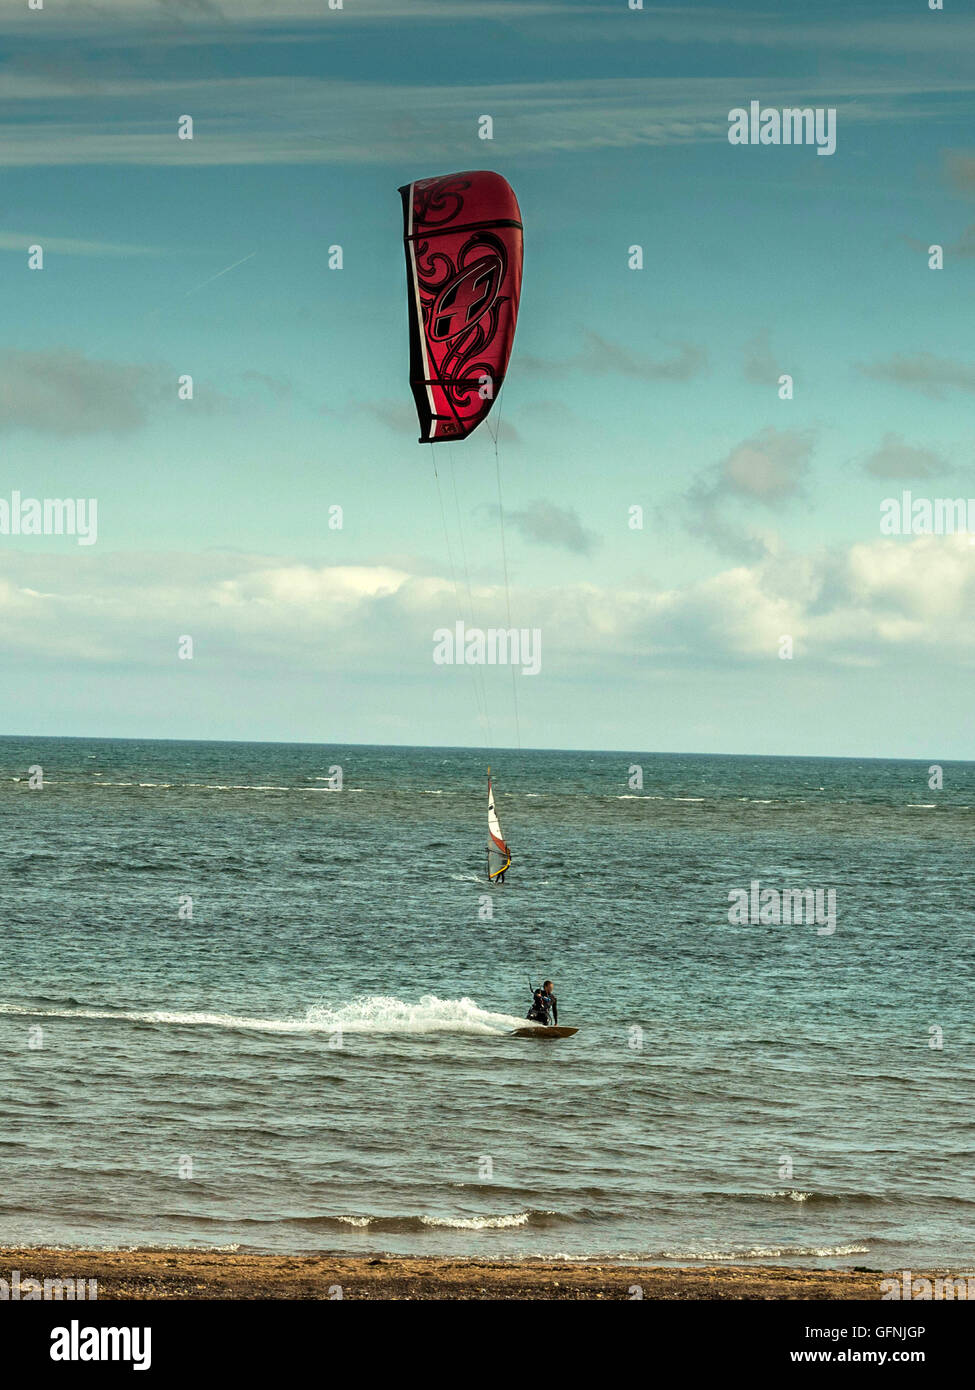 Kite surfing along the beautiful Jurassic seaside coast around the mouth of the River Exe estuary, with blue sea - Stock Image